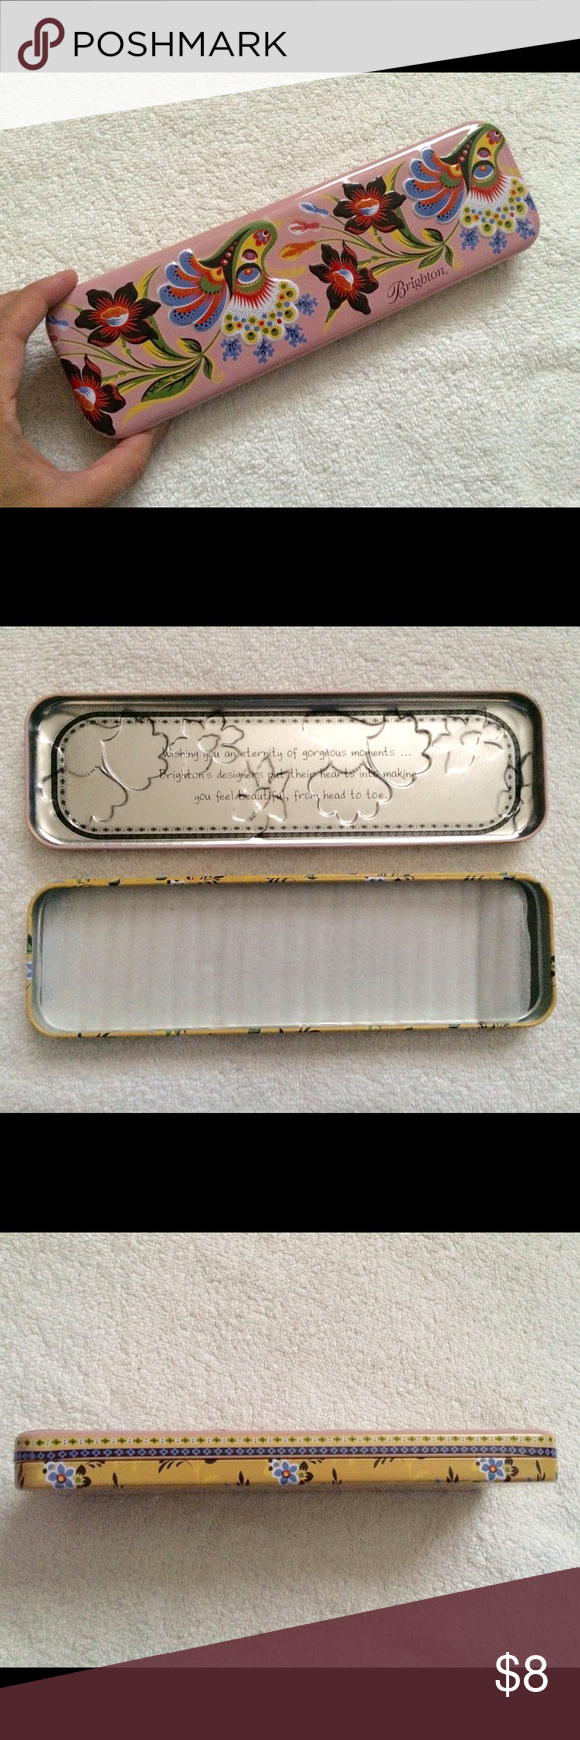 """Brighton Unused Empty Metal Watch Pencil Case Unused Brighton watch container, excellent condition. 9.5"""" long. It is a pretty pink and yellow Floral design. No noticeable marks or scratches. Brighton Accessories"""